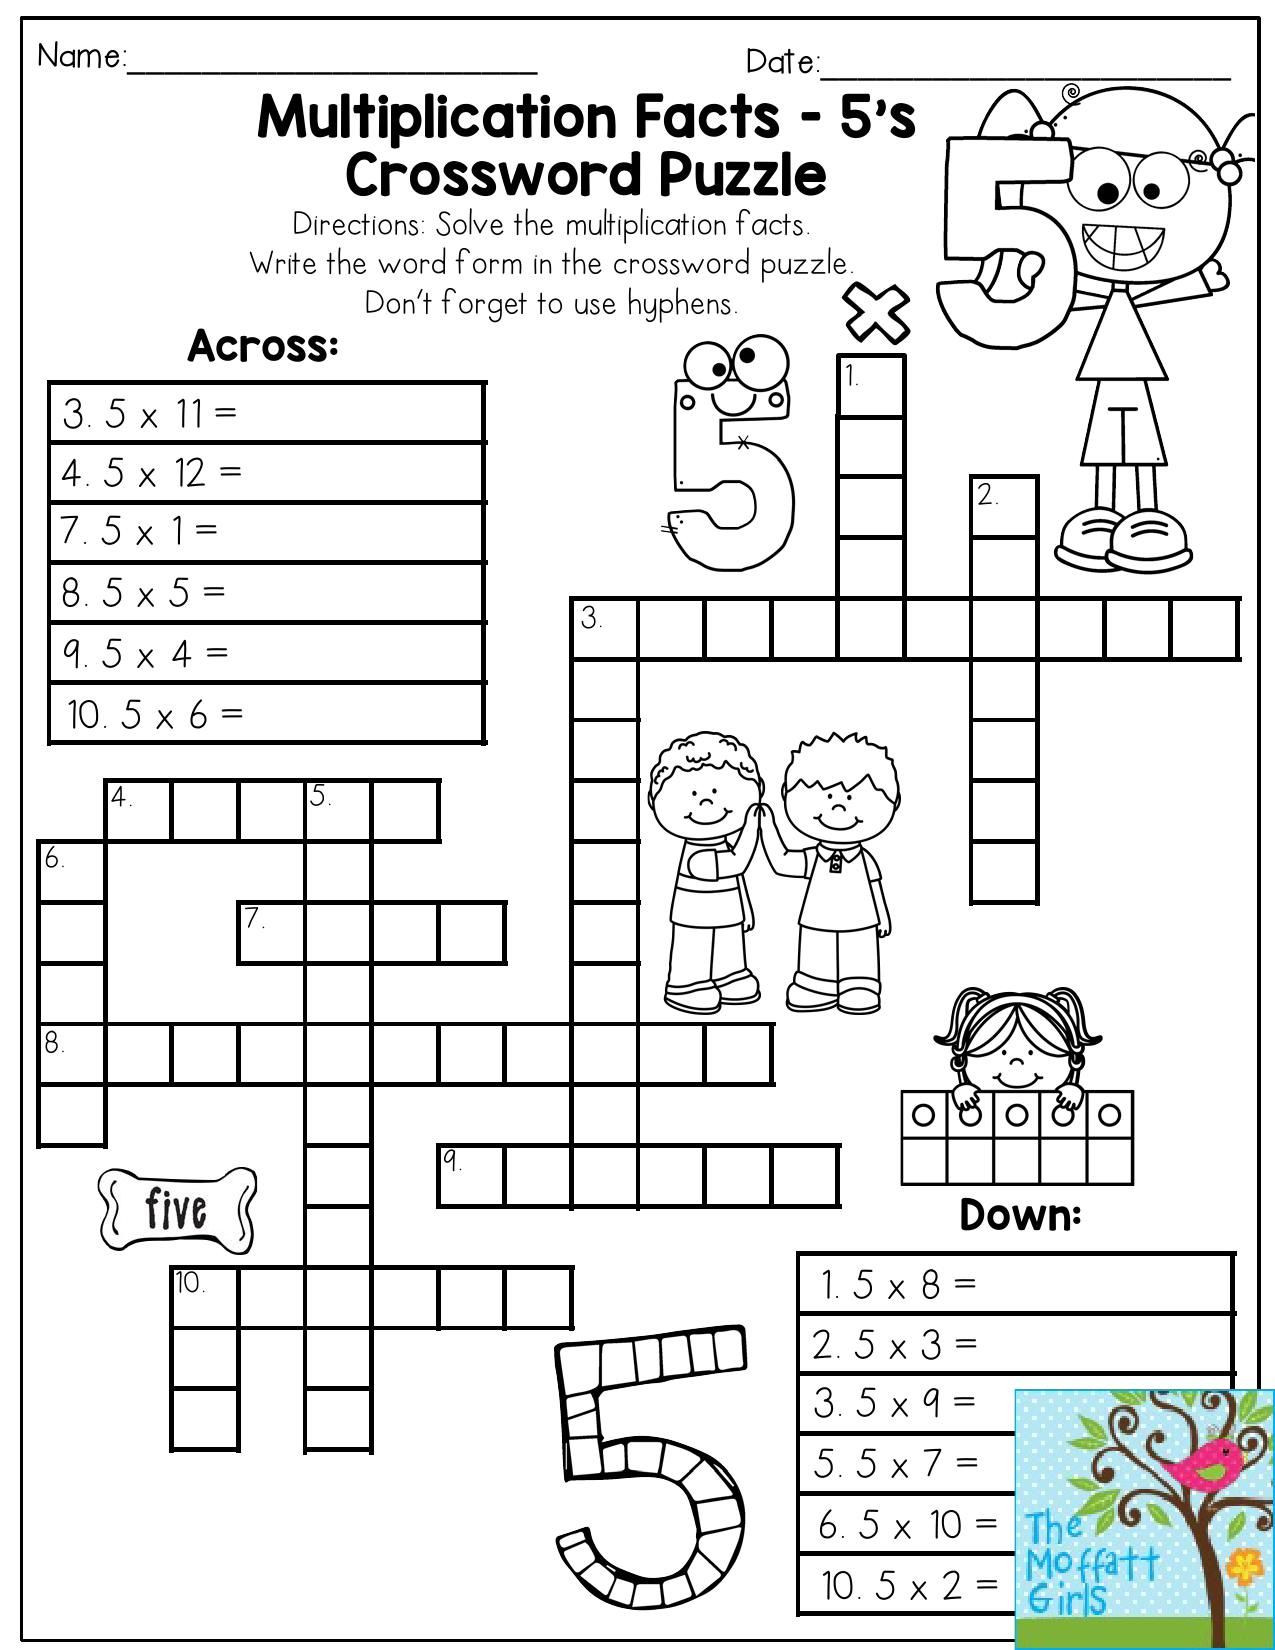 Multiplication Puzzle Worksheets 4th Grade Multiplication Facts Crossword Puzzle Third Grade Students